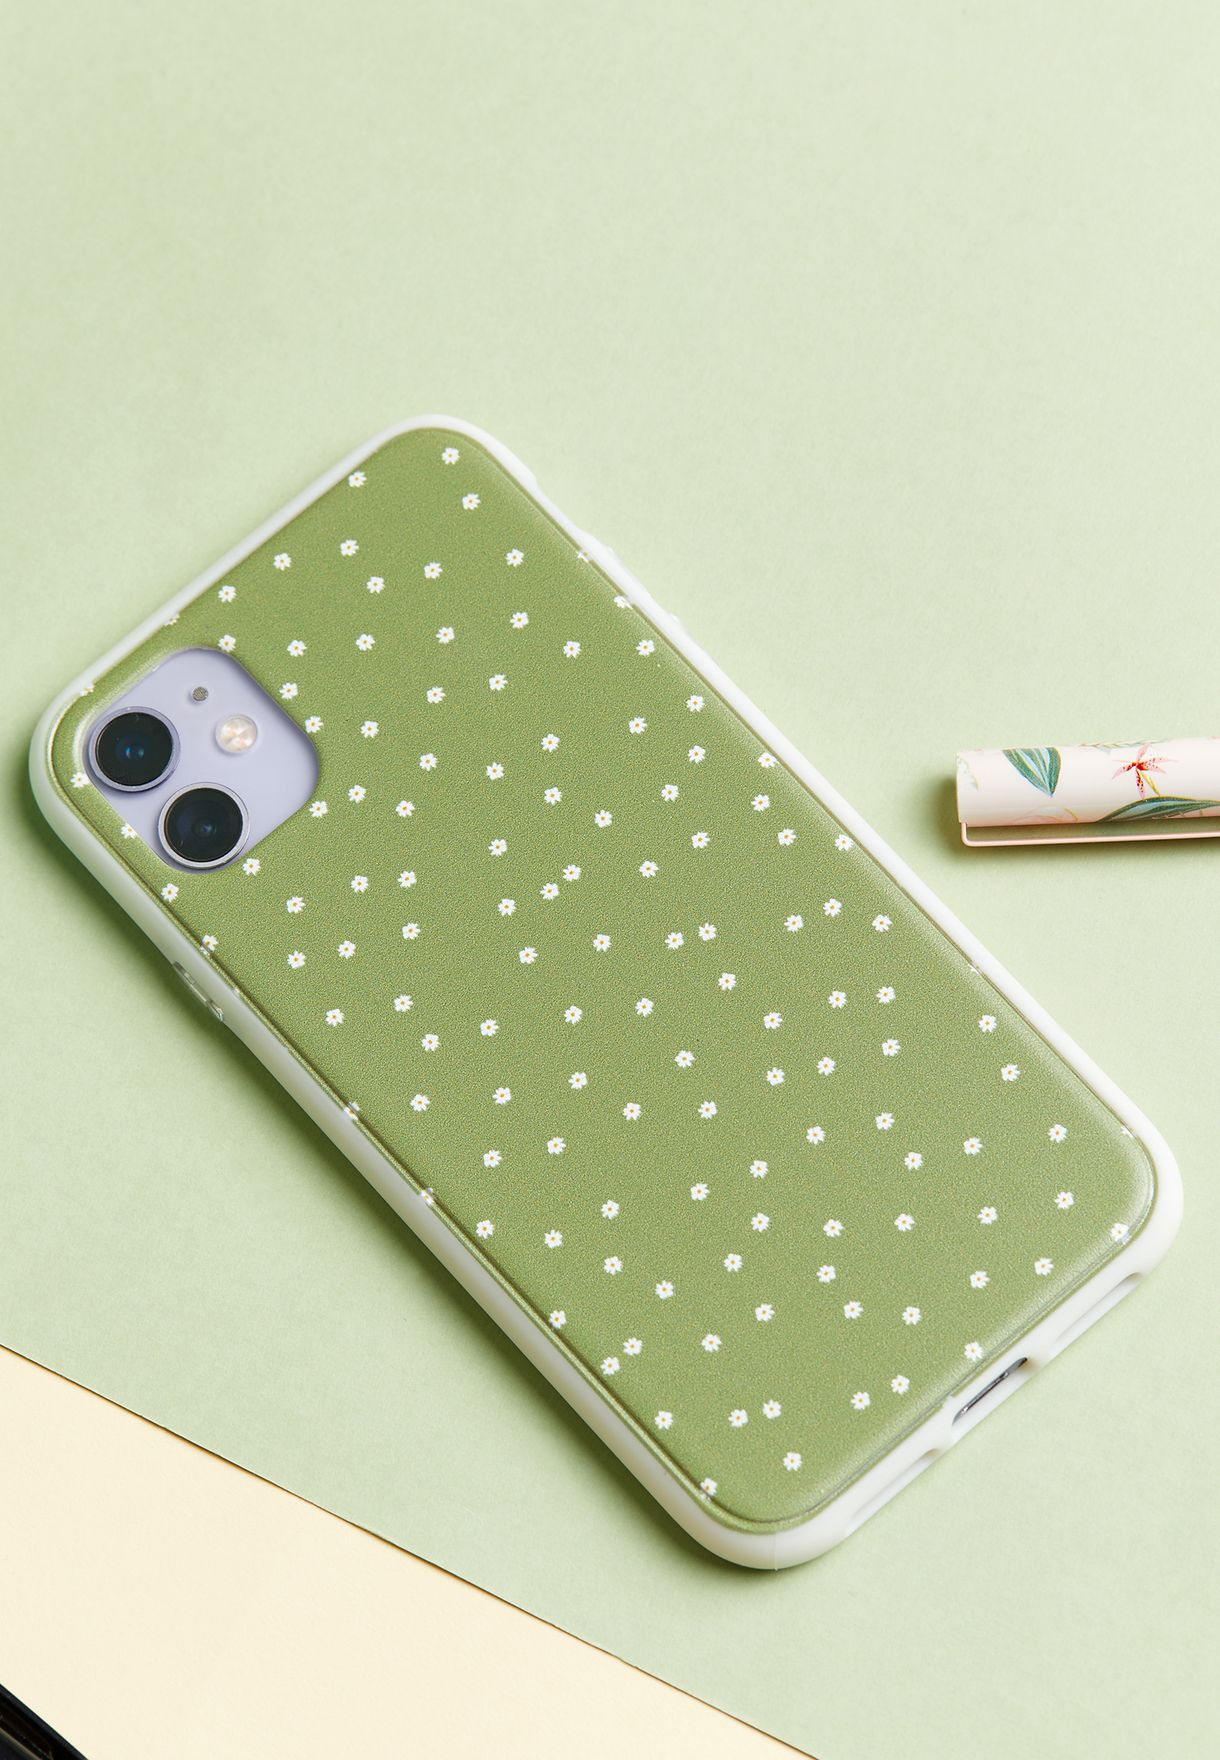 Snap On Protective iPhone 6, 7, 8 ,XS MAX,11 Case